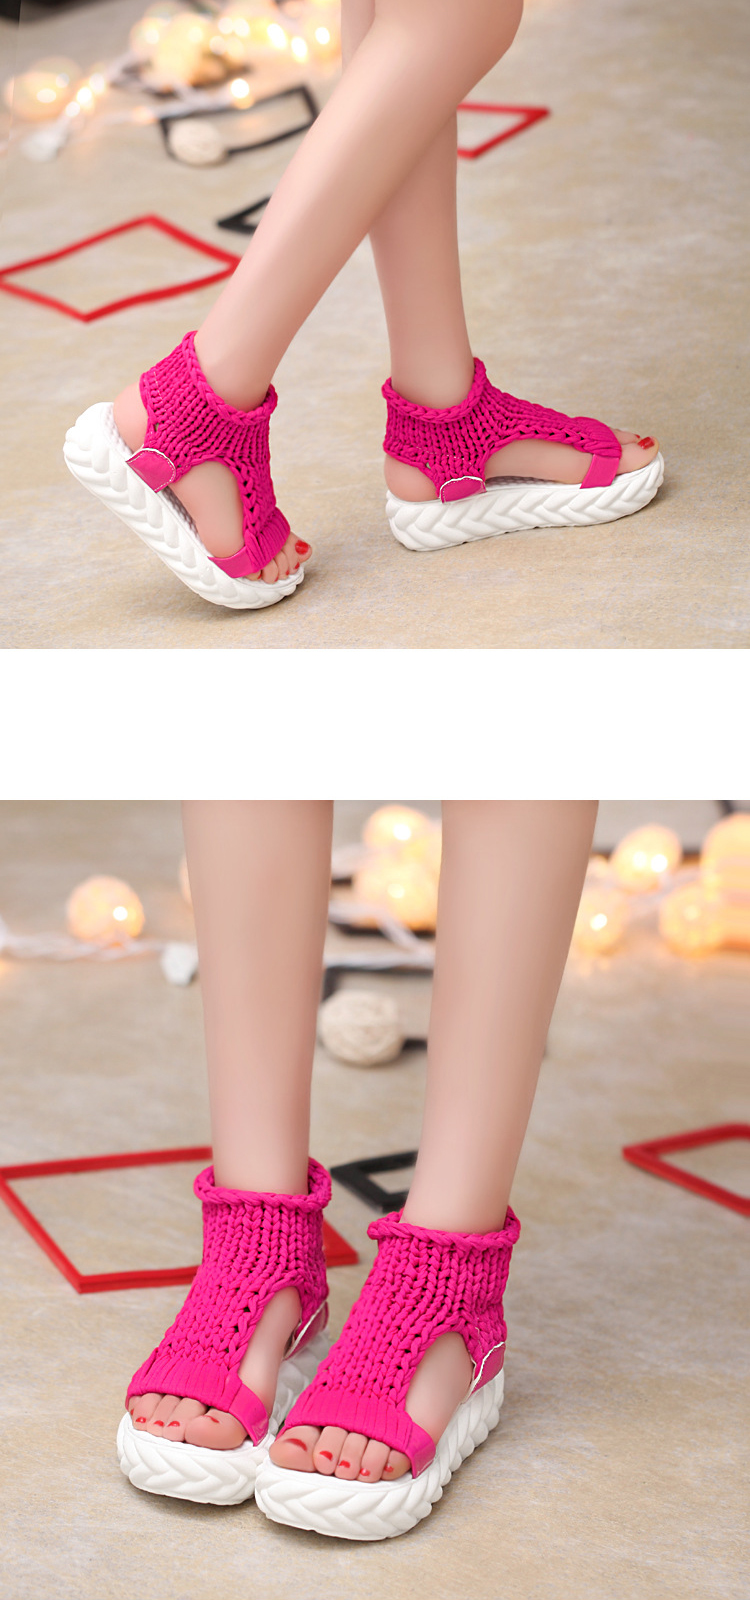 HTB1UHP7o9BYBeNjy0Feq6znmFXaq 2019 New Casual Summer Shoes Women Comfortable Wool Ladies Platform Sandals Knit High Heels Grey Rose Red Sandales